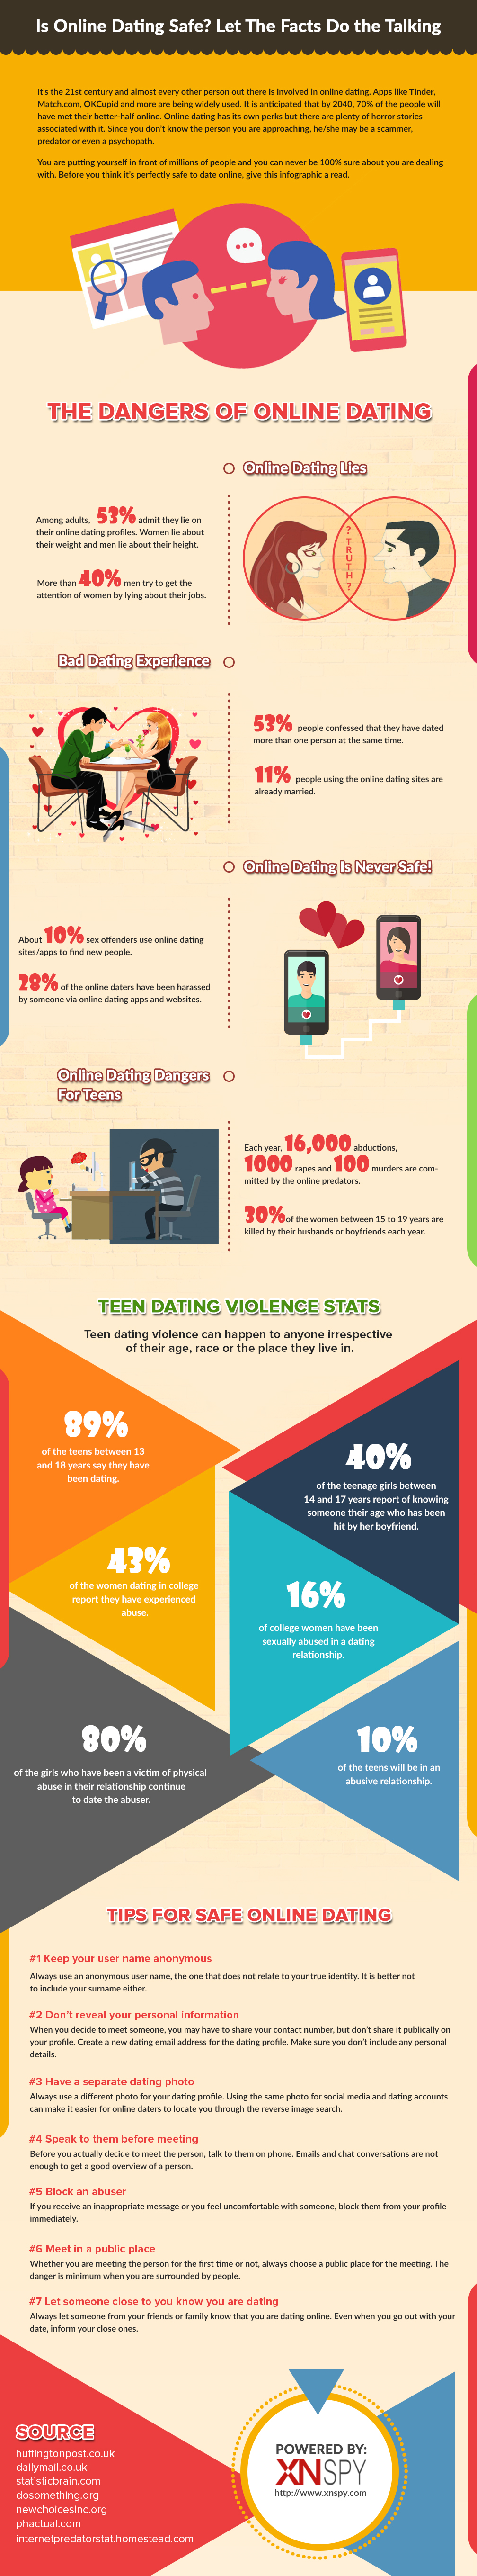 Is Online Dating Safe?